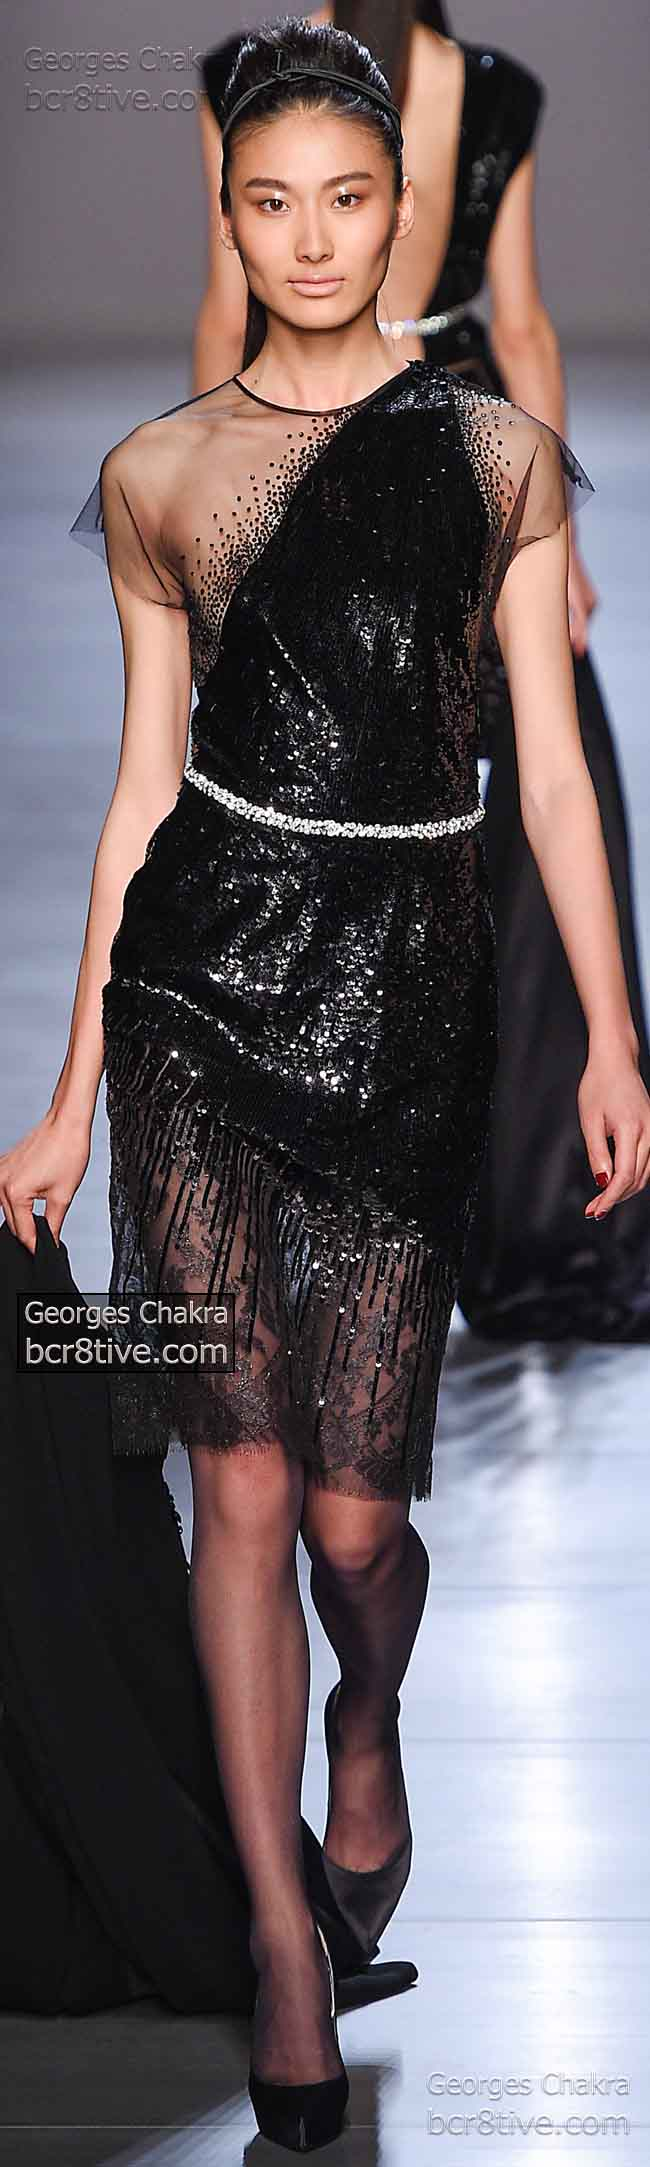 Black Sequins and Beading Tribal Style